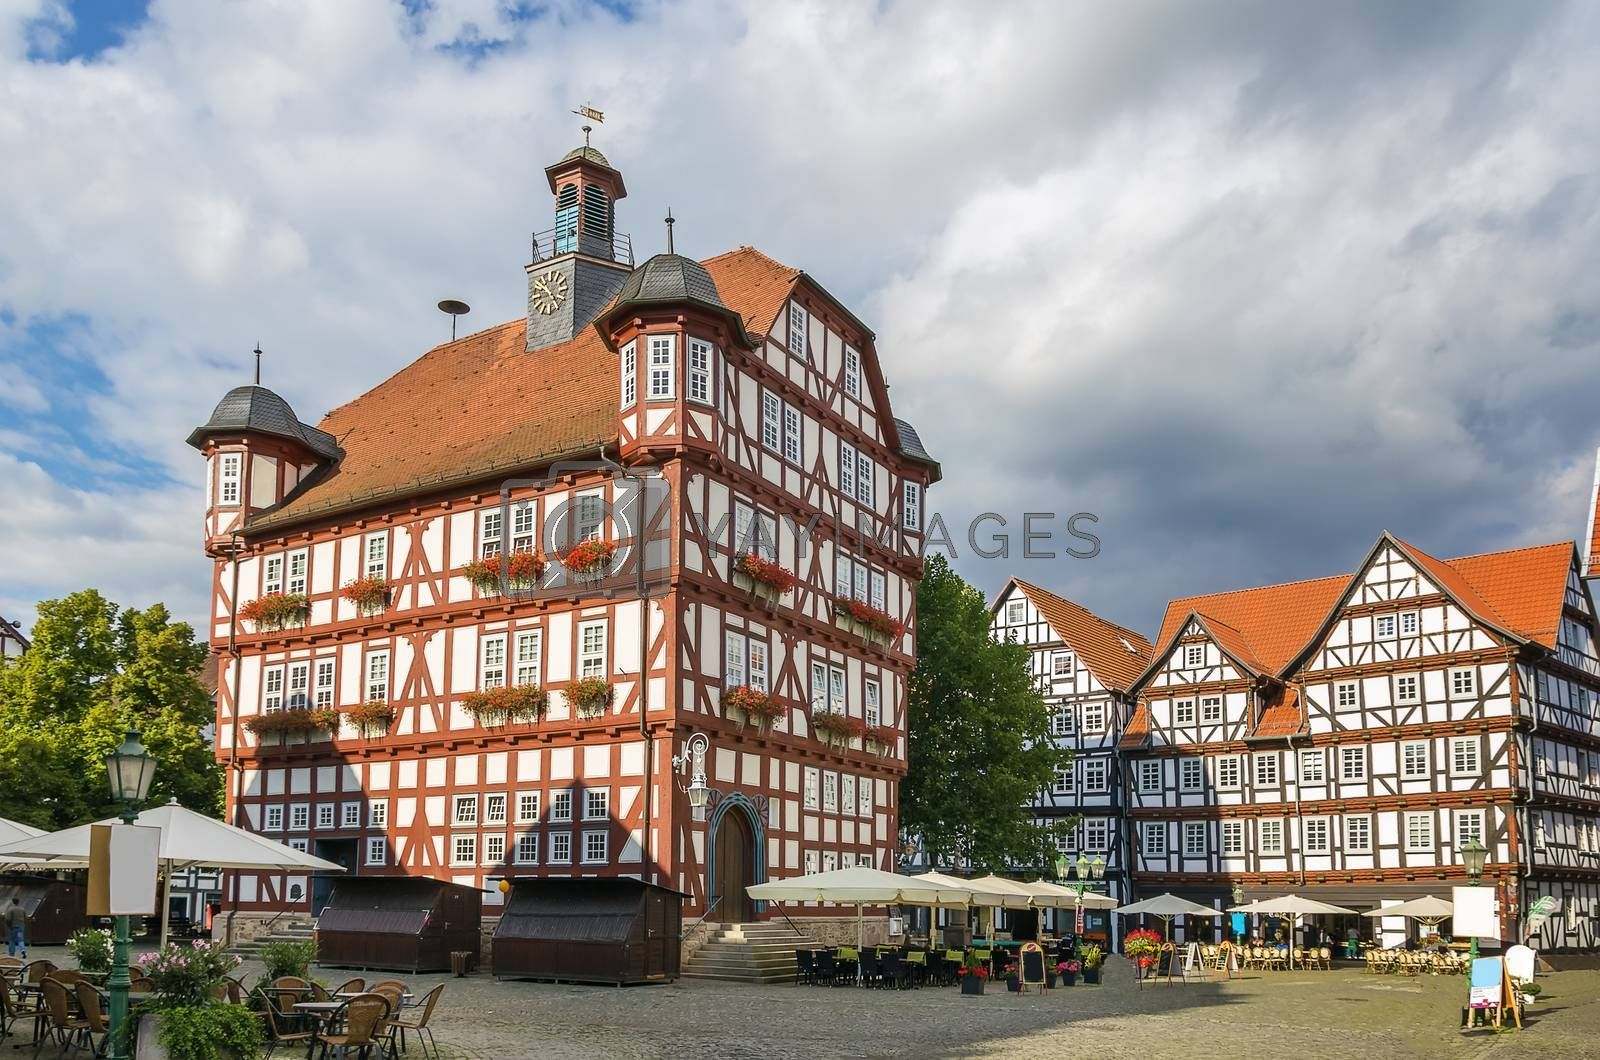 Downtown of Melsungen, Germany by borisb17